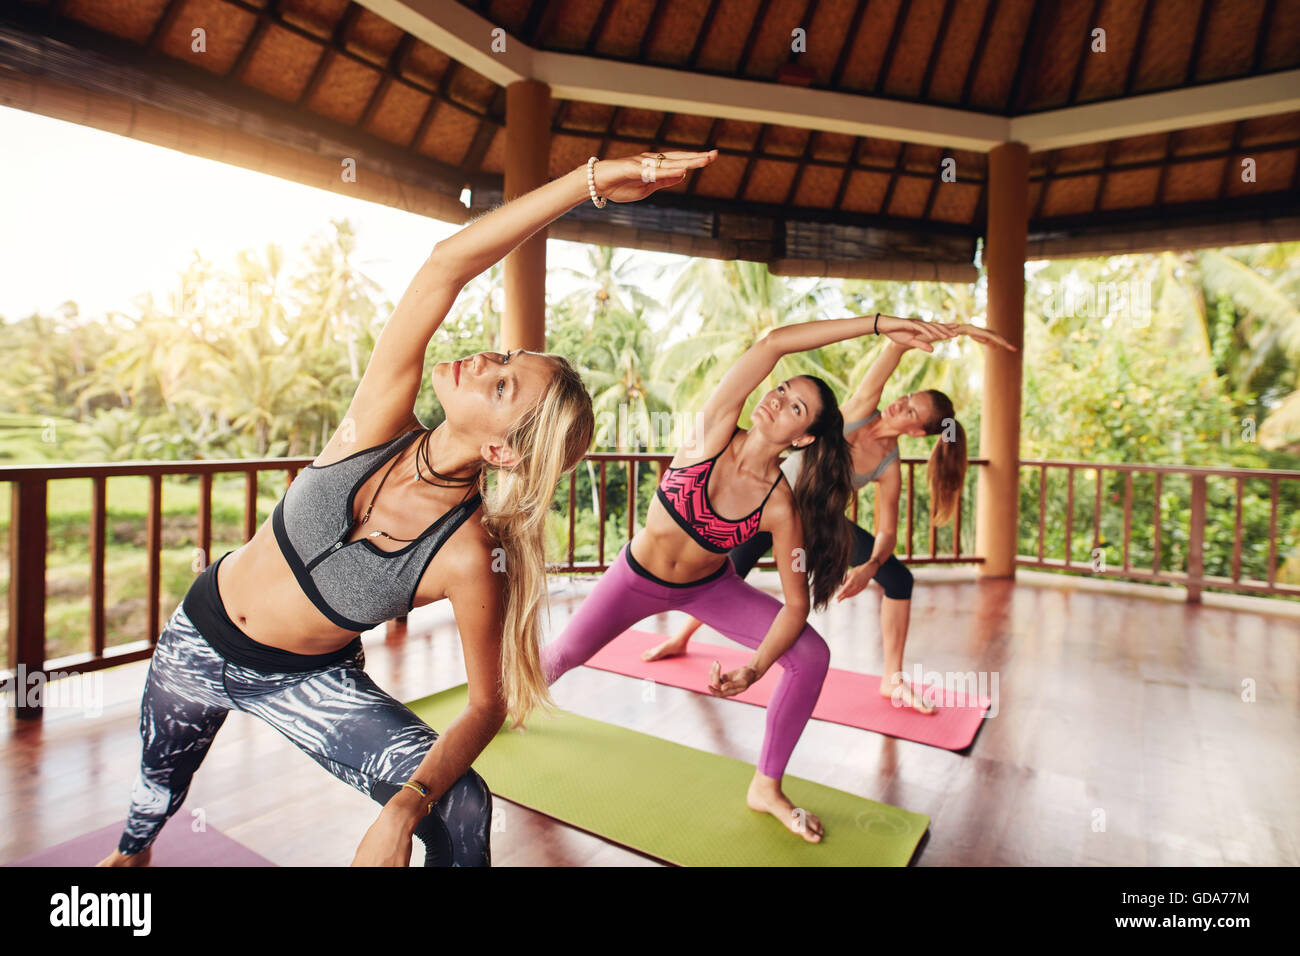 Yoga class with young women stretching arms. healthy group of females performing yoga together. - Stock Image